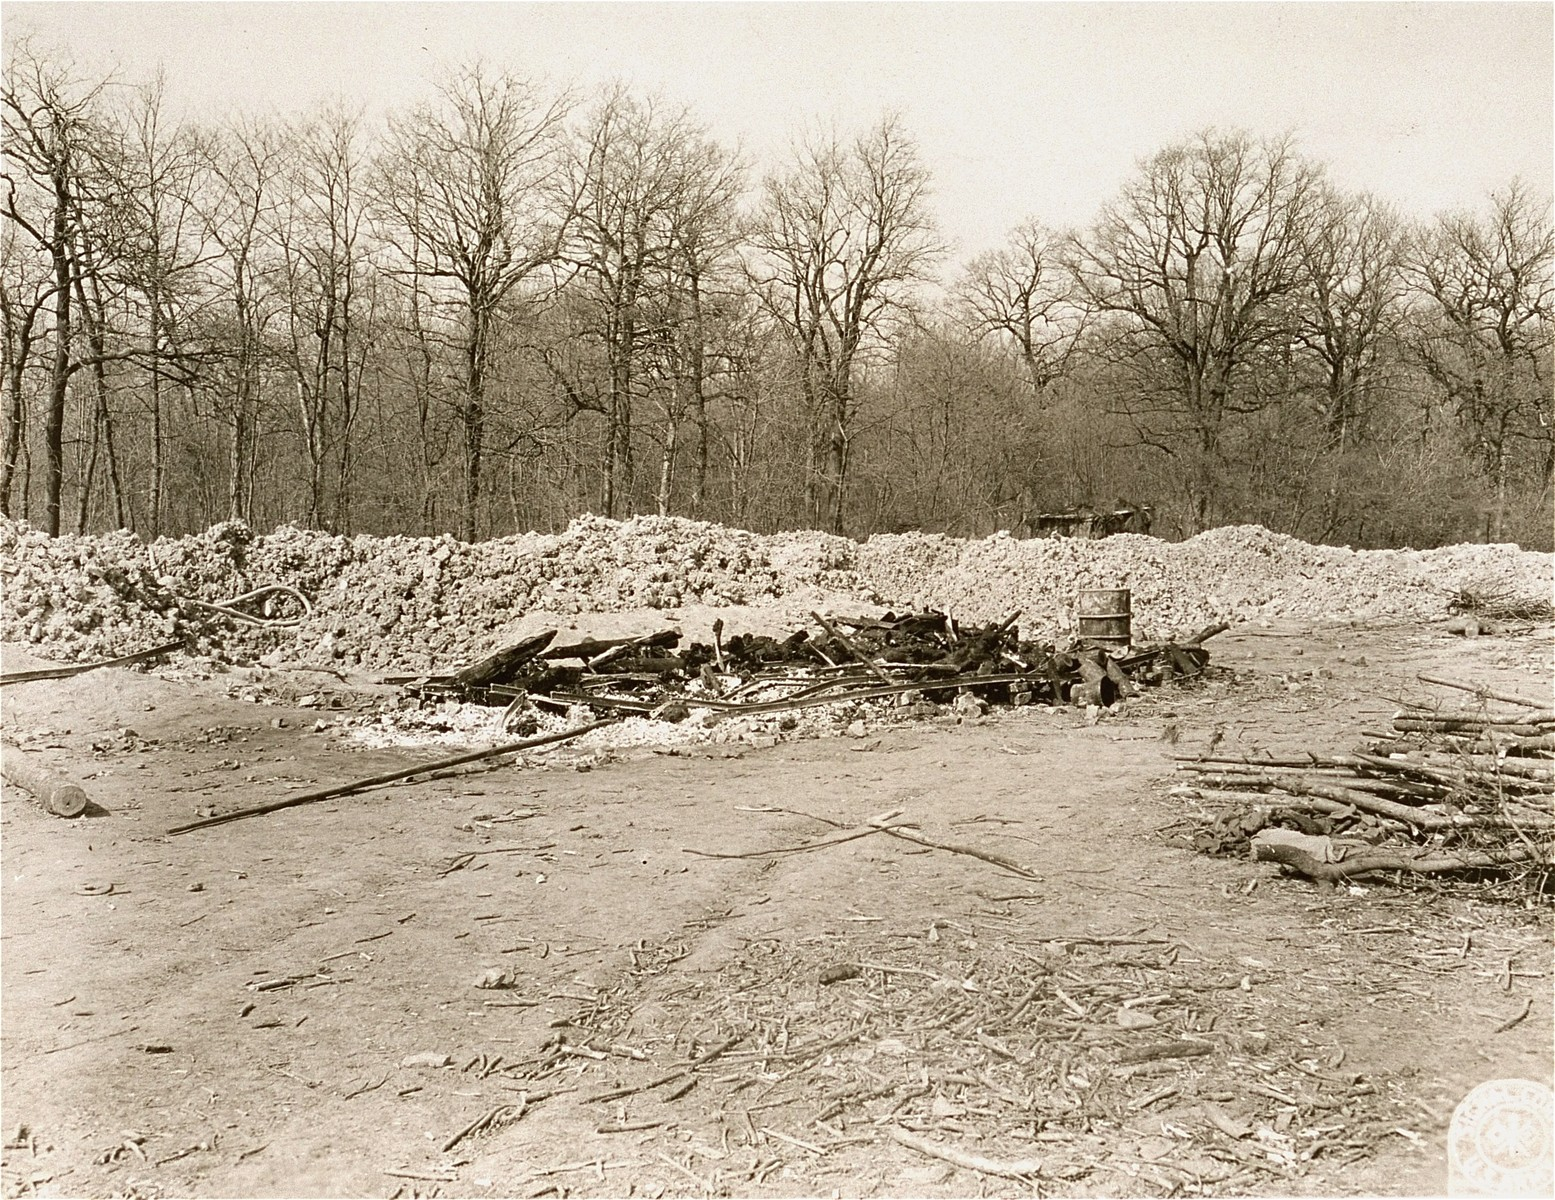 The remains of an open pyre where bodies exhumed from a mass grave were burned prior to the arrival of American forces at Ohrdruf.